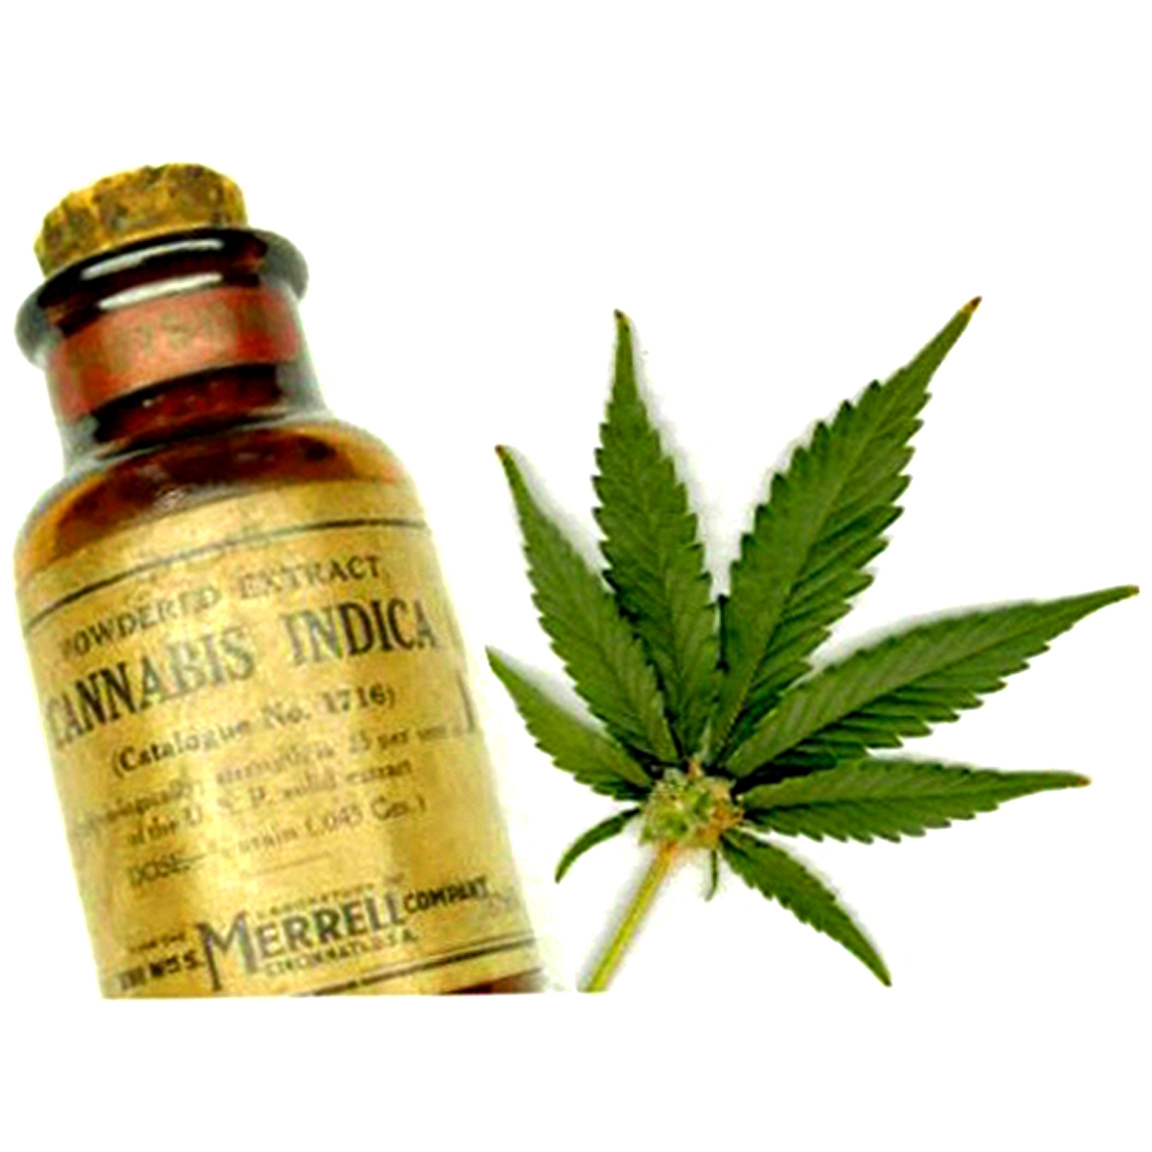 Early-1900s vial of commercial cannabis powder